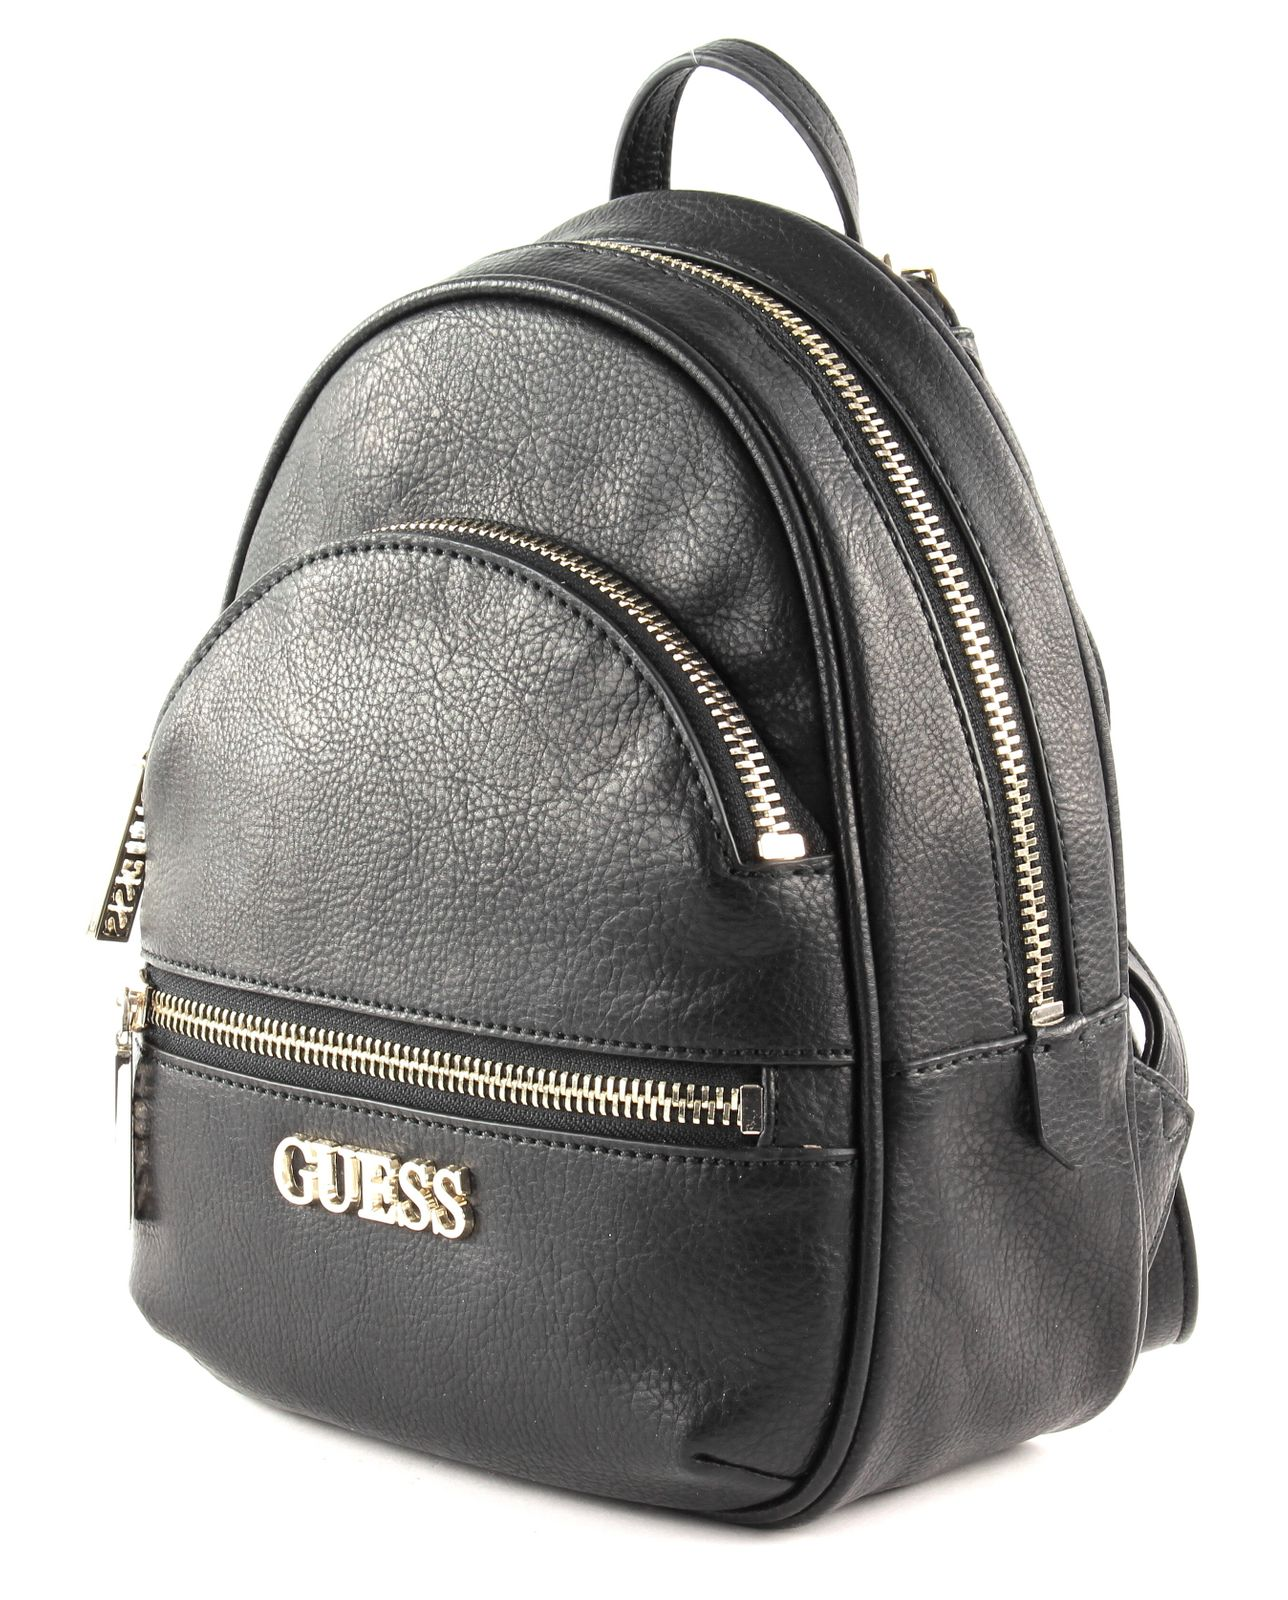 GUESS Manhattan Small Backpack Black